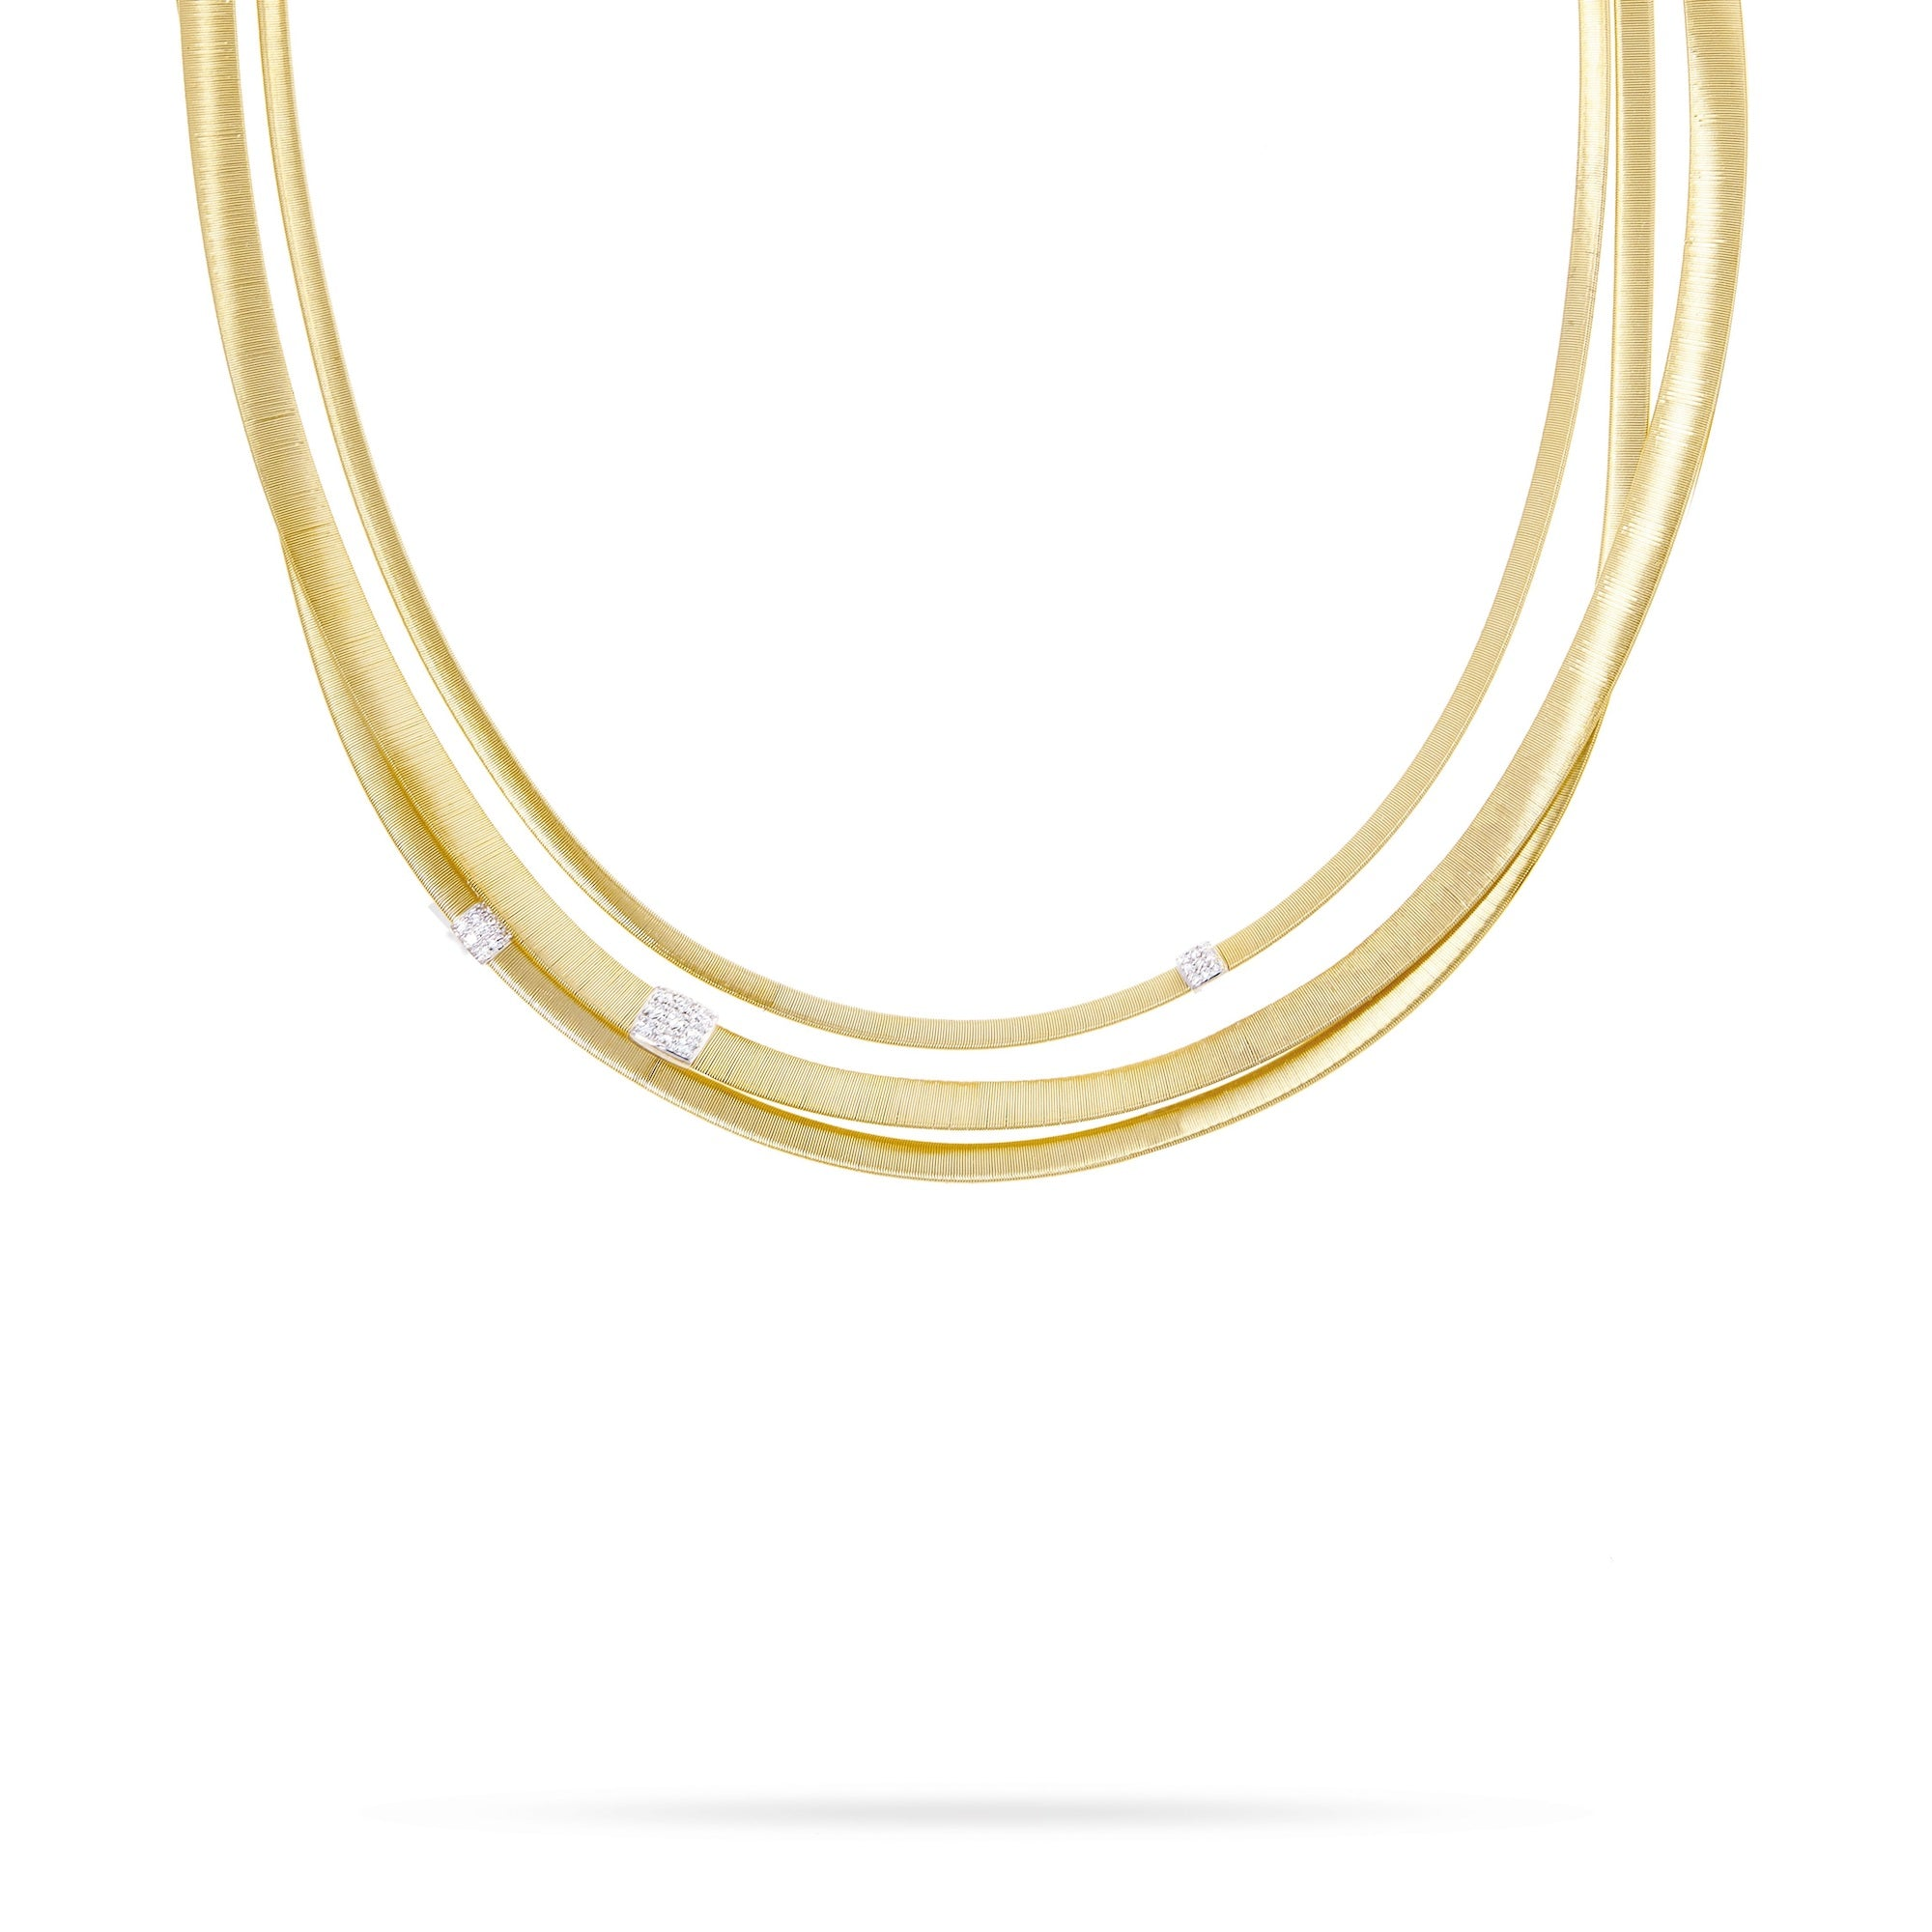 18K Three Strand Diamond Necklace in Yellow Gold